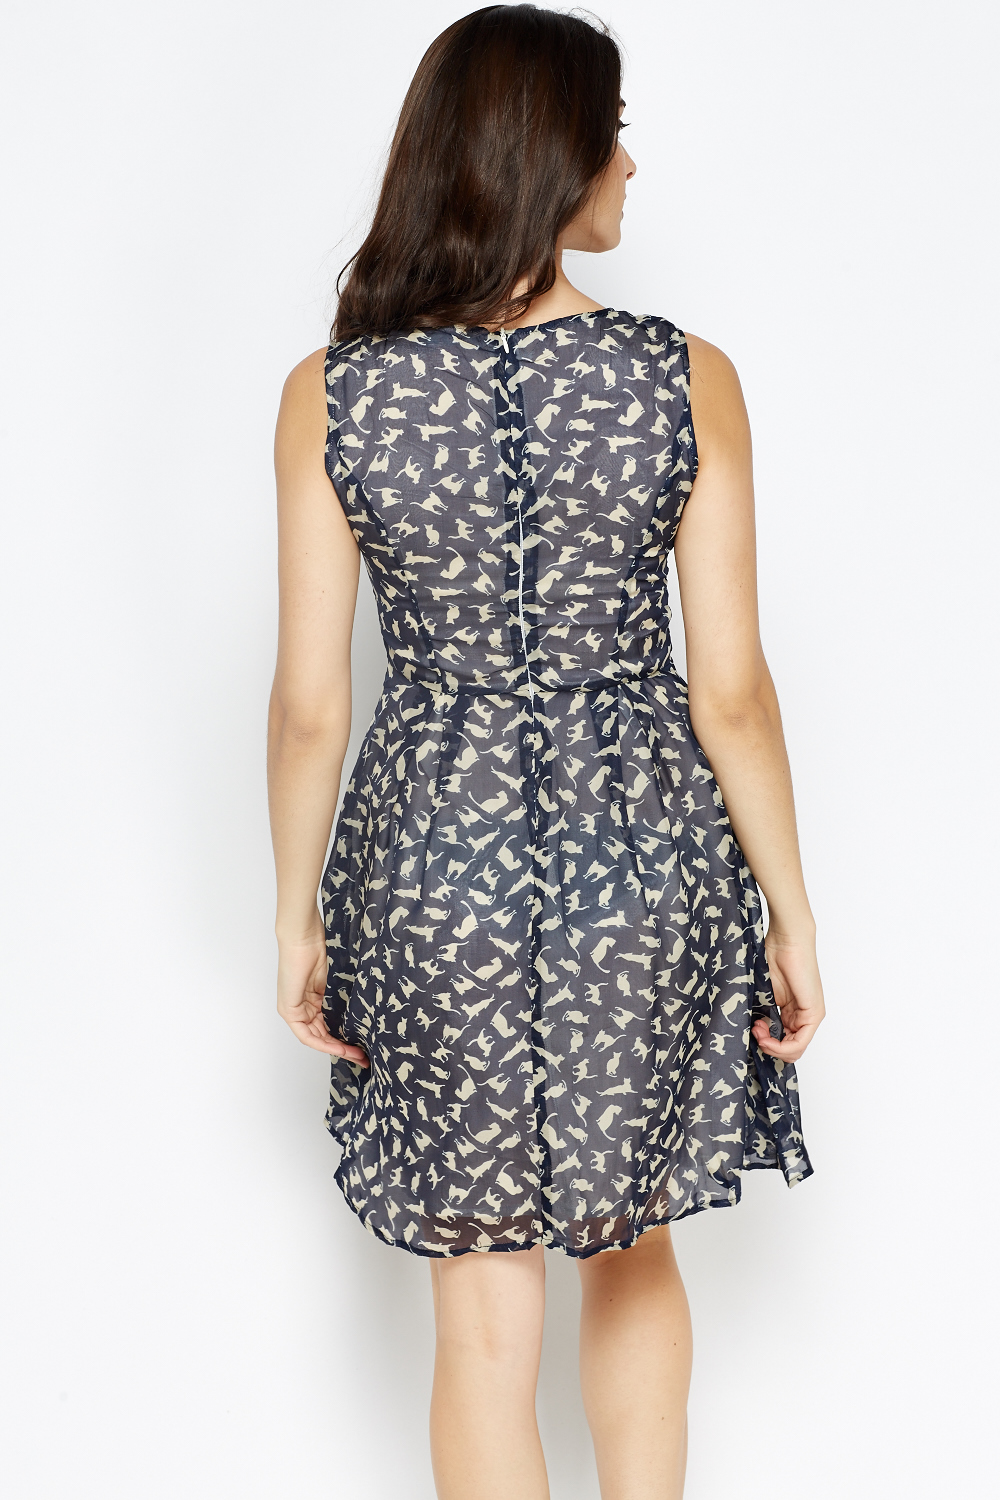 Buy CowCow Womens Cats Kitten Lovely Colorful Pattern Skater Dress, XS-5XL and other Casual at yageimer.ga Our wide selection is elegible for free shipping and free returns/5(10).